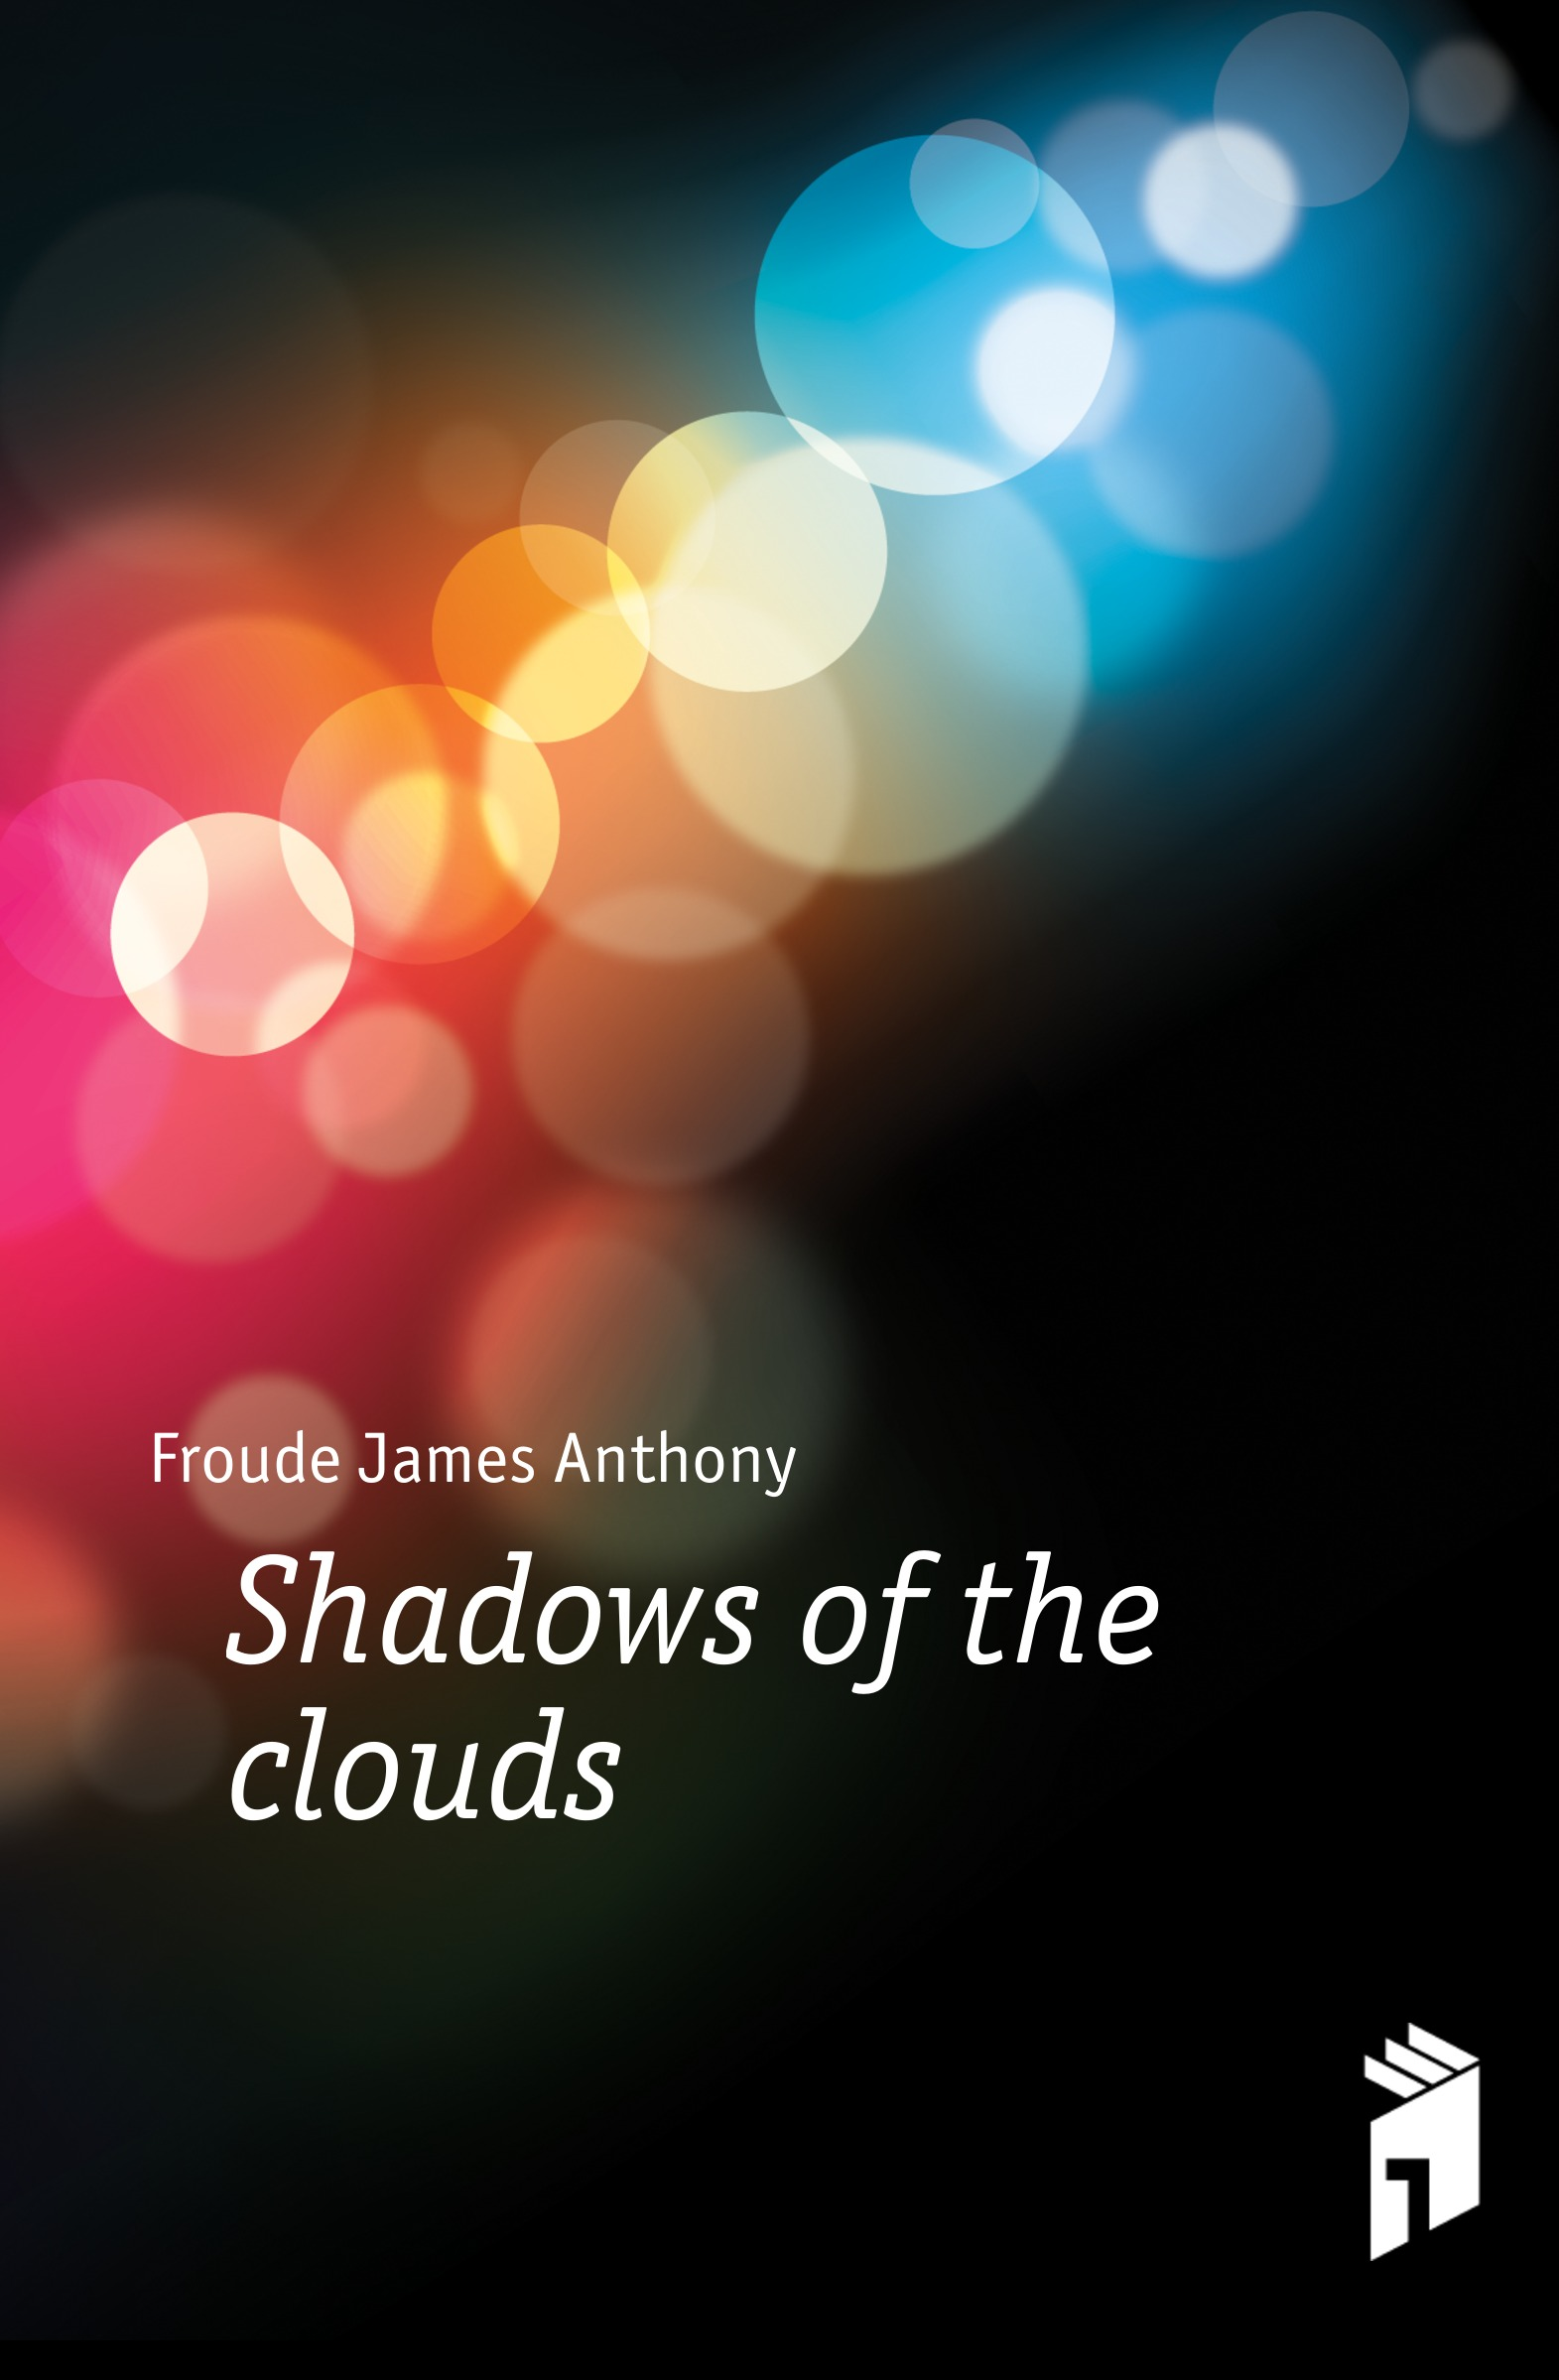 купить James Anthony Froude Shadows of the clouds по цене 1279 рублей